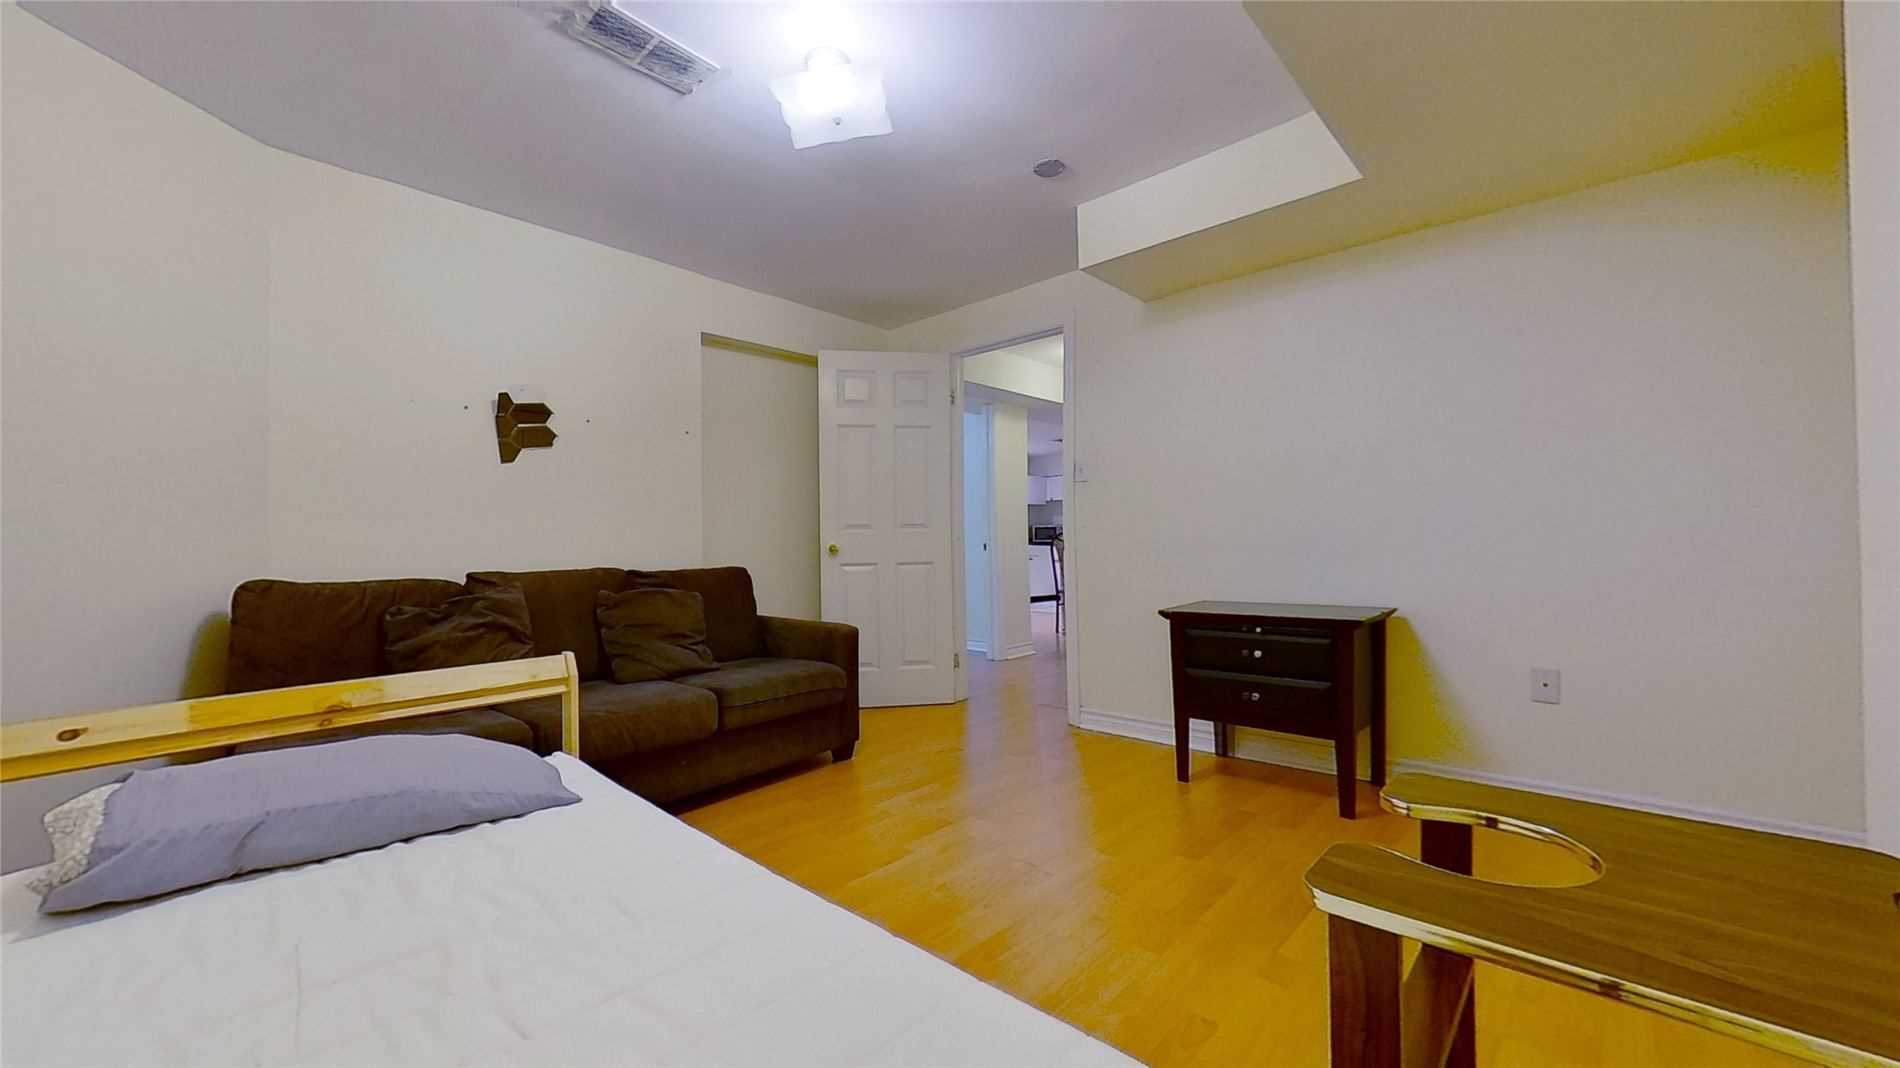 Image 5 of 16 showing inside of 2 Bedroom Detached 2-Storey for Lease at 5 Whalen Crt, Richmond Hill L4C9T5